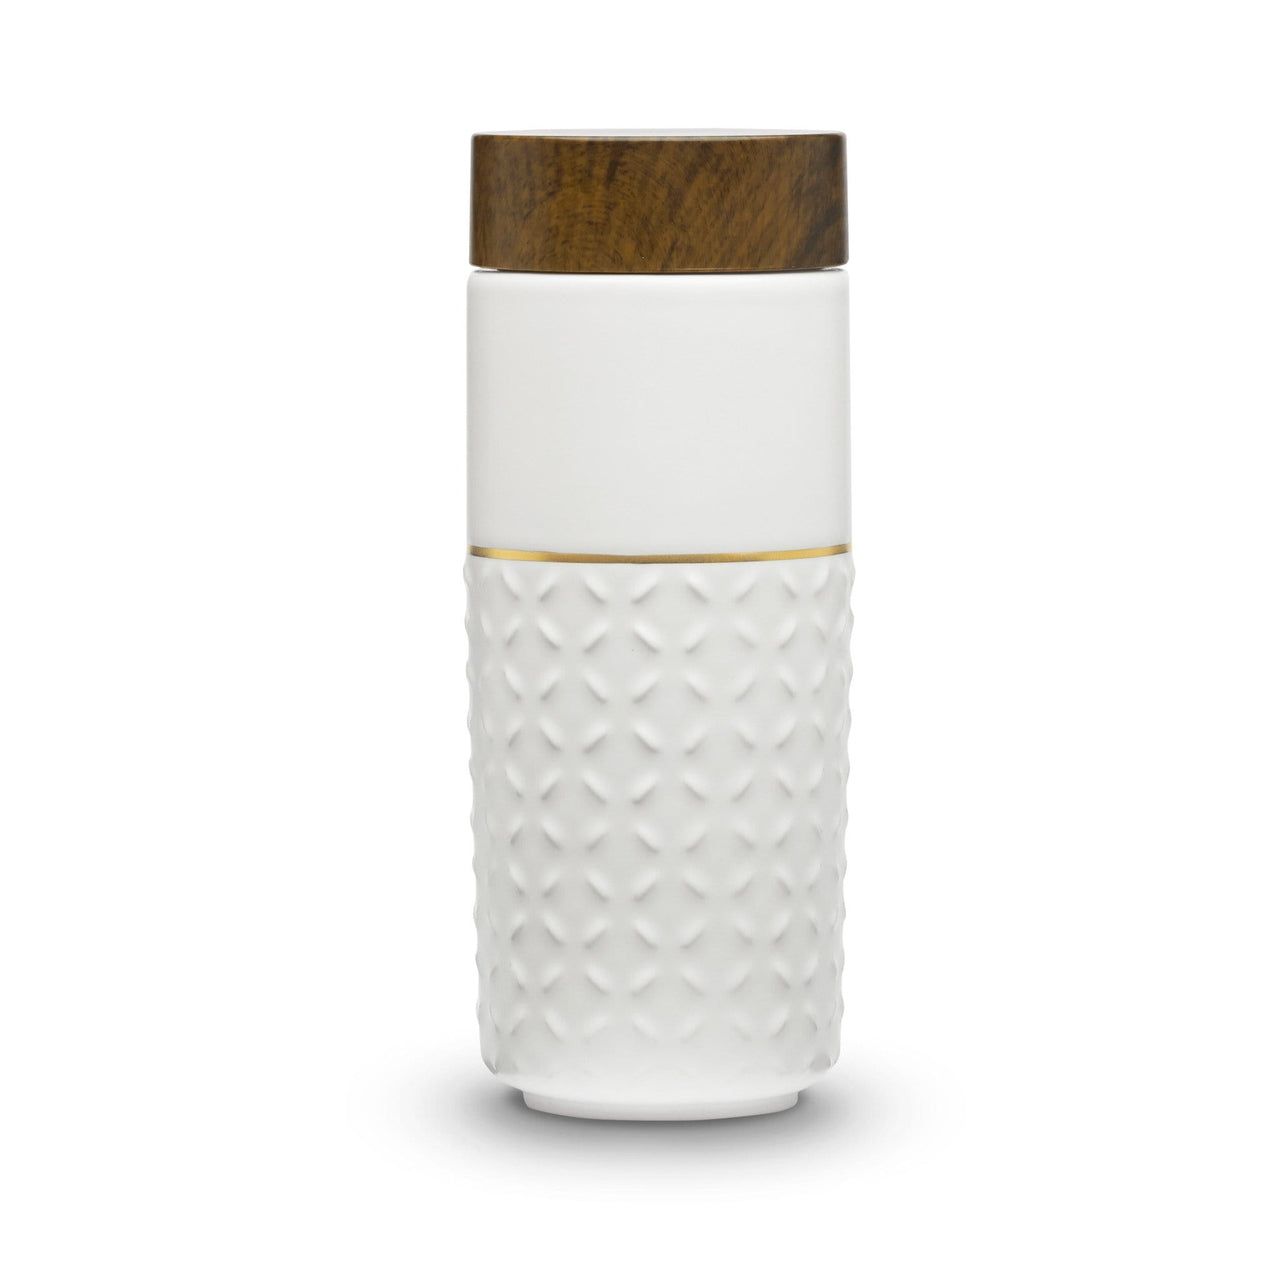 Acera Liven Flasks & Water Bottles White + Golden Line (Hand Painted) One-O-One Dreamy Starry Sky Gold Tumbler